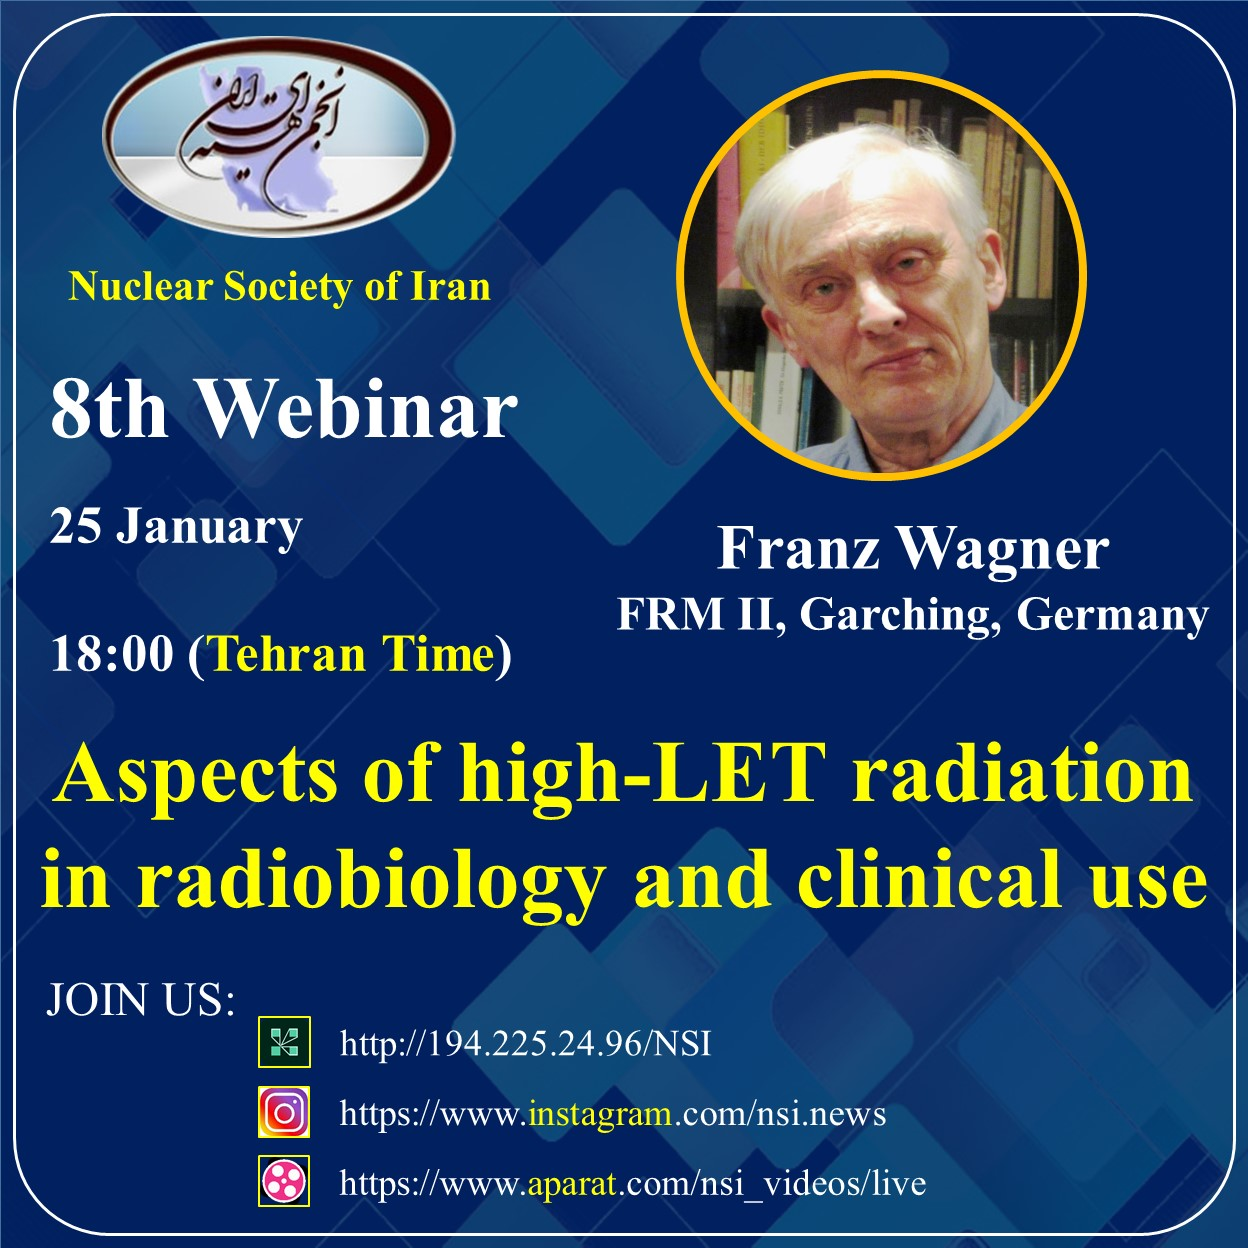 Aspects of high-LET radiation in radiobiology and clinical use